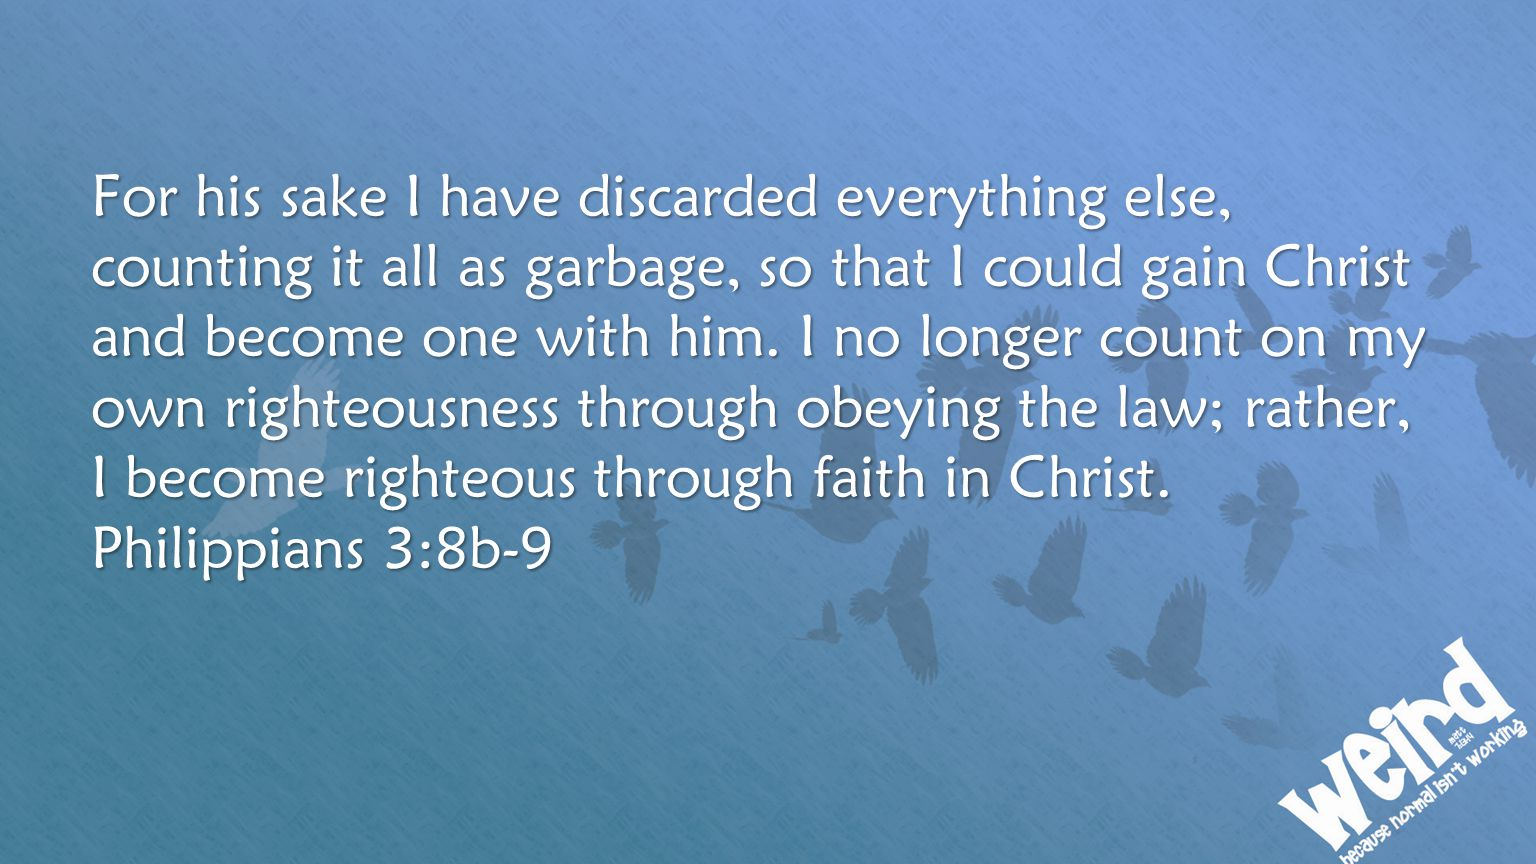 For his sake I have discarded everything else, counting it all as garbage, so that I could gain Christ and become one with him.